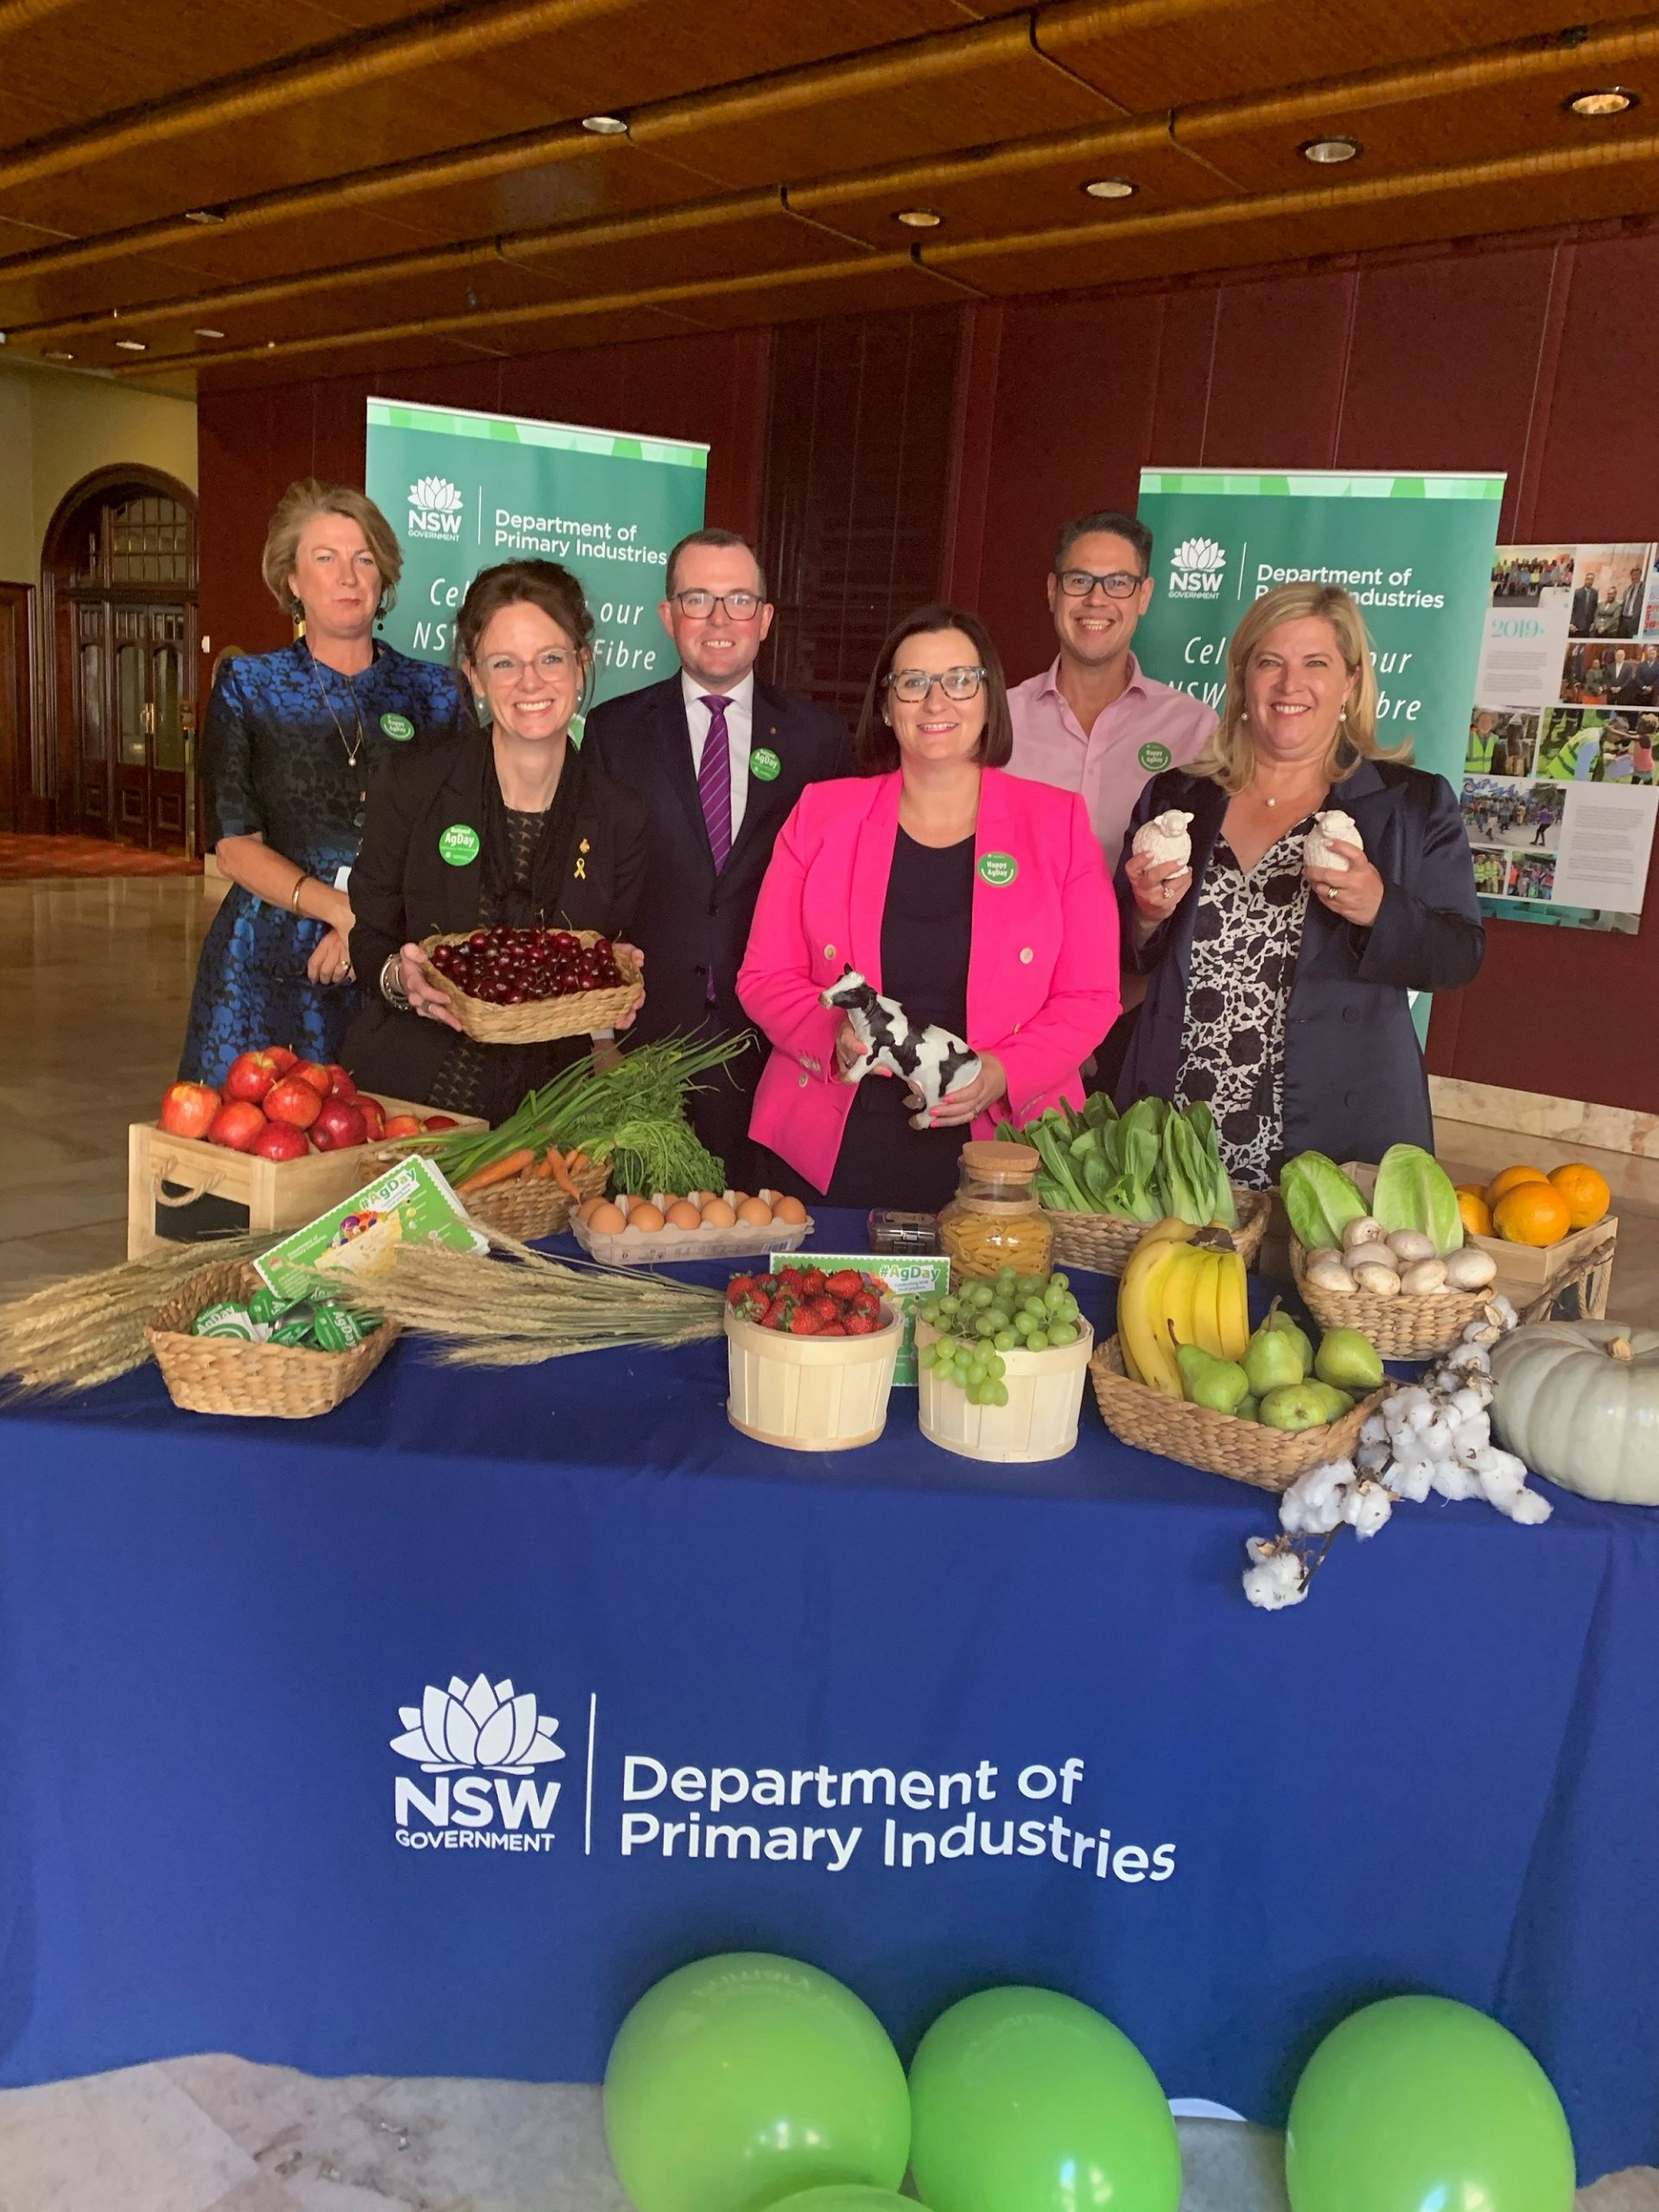 Minister Melinda Pavey, Steph Cooke MP, Minister Adam Marshall, Minister Sarah Mitchell, Wes Fang MLC and Minister Bronnie Taylor hold fruit, vegetables and plastic cows while standing behind a table covered in fruit, vegetables and eggs.